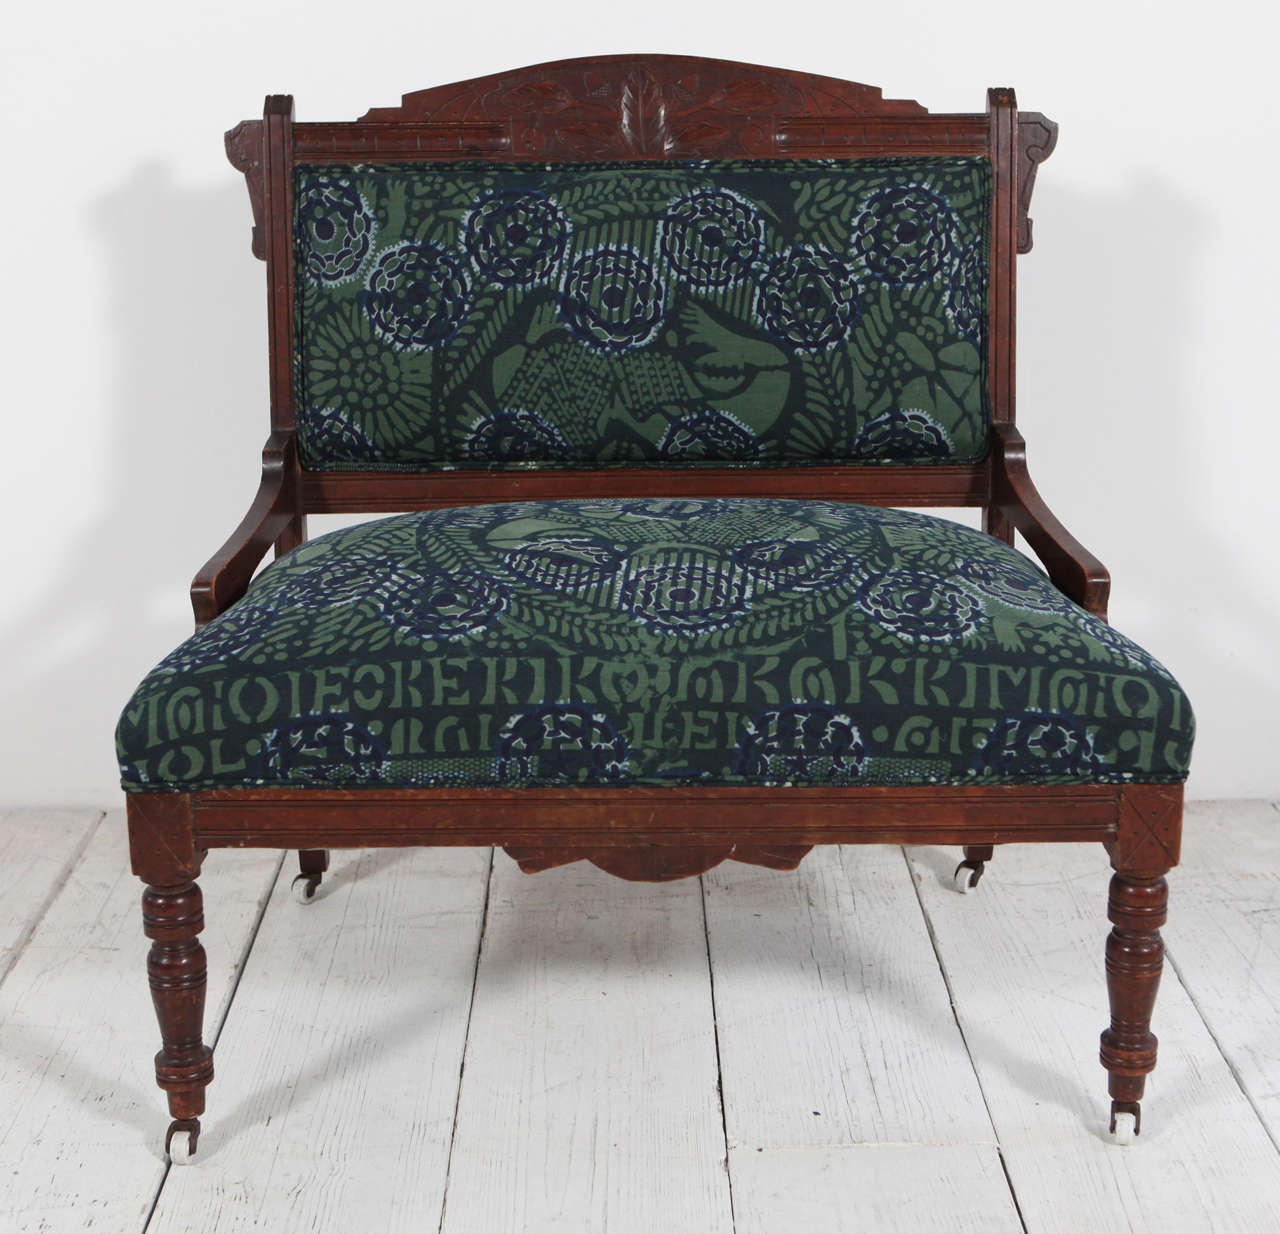 Vintage Settee On Casters Upholstered In African Textile.